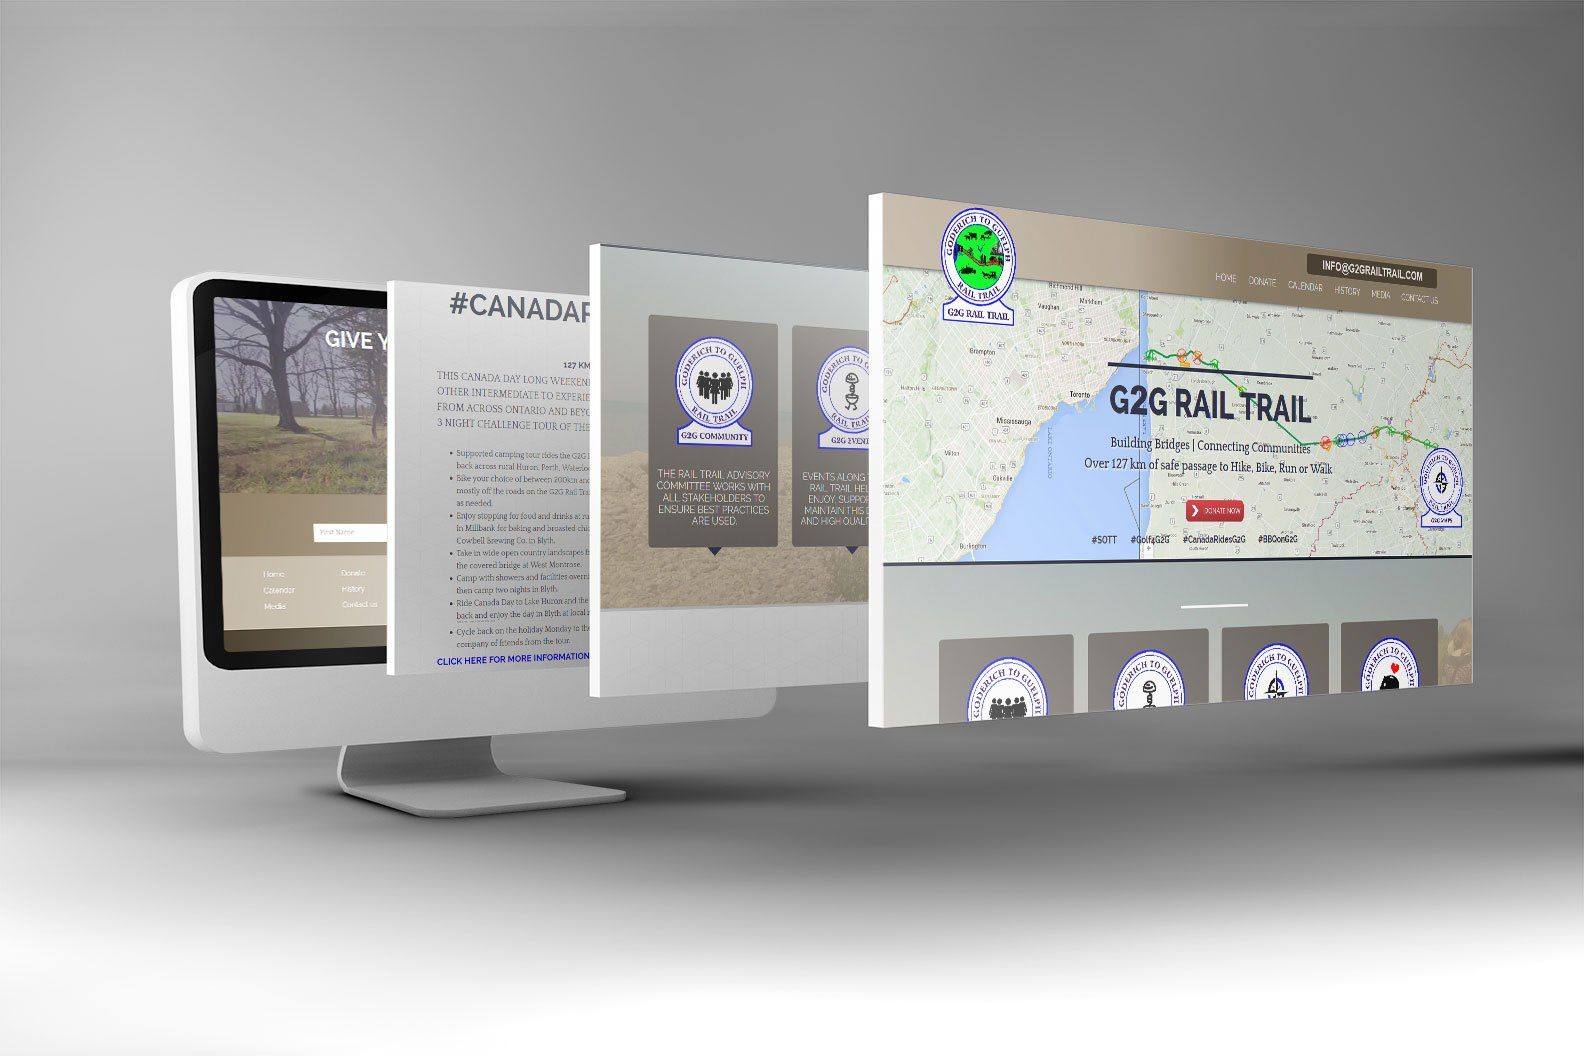 g2g-rail-trail-3d-screens-view-2